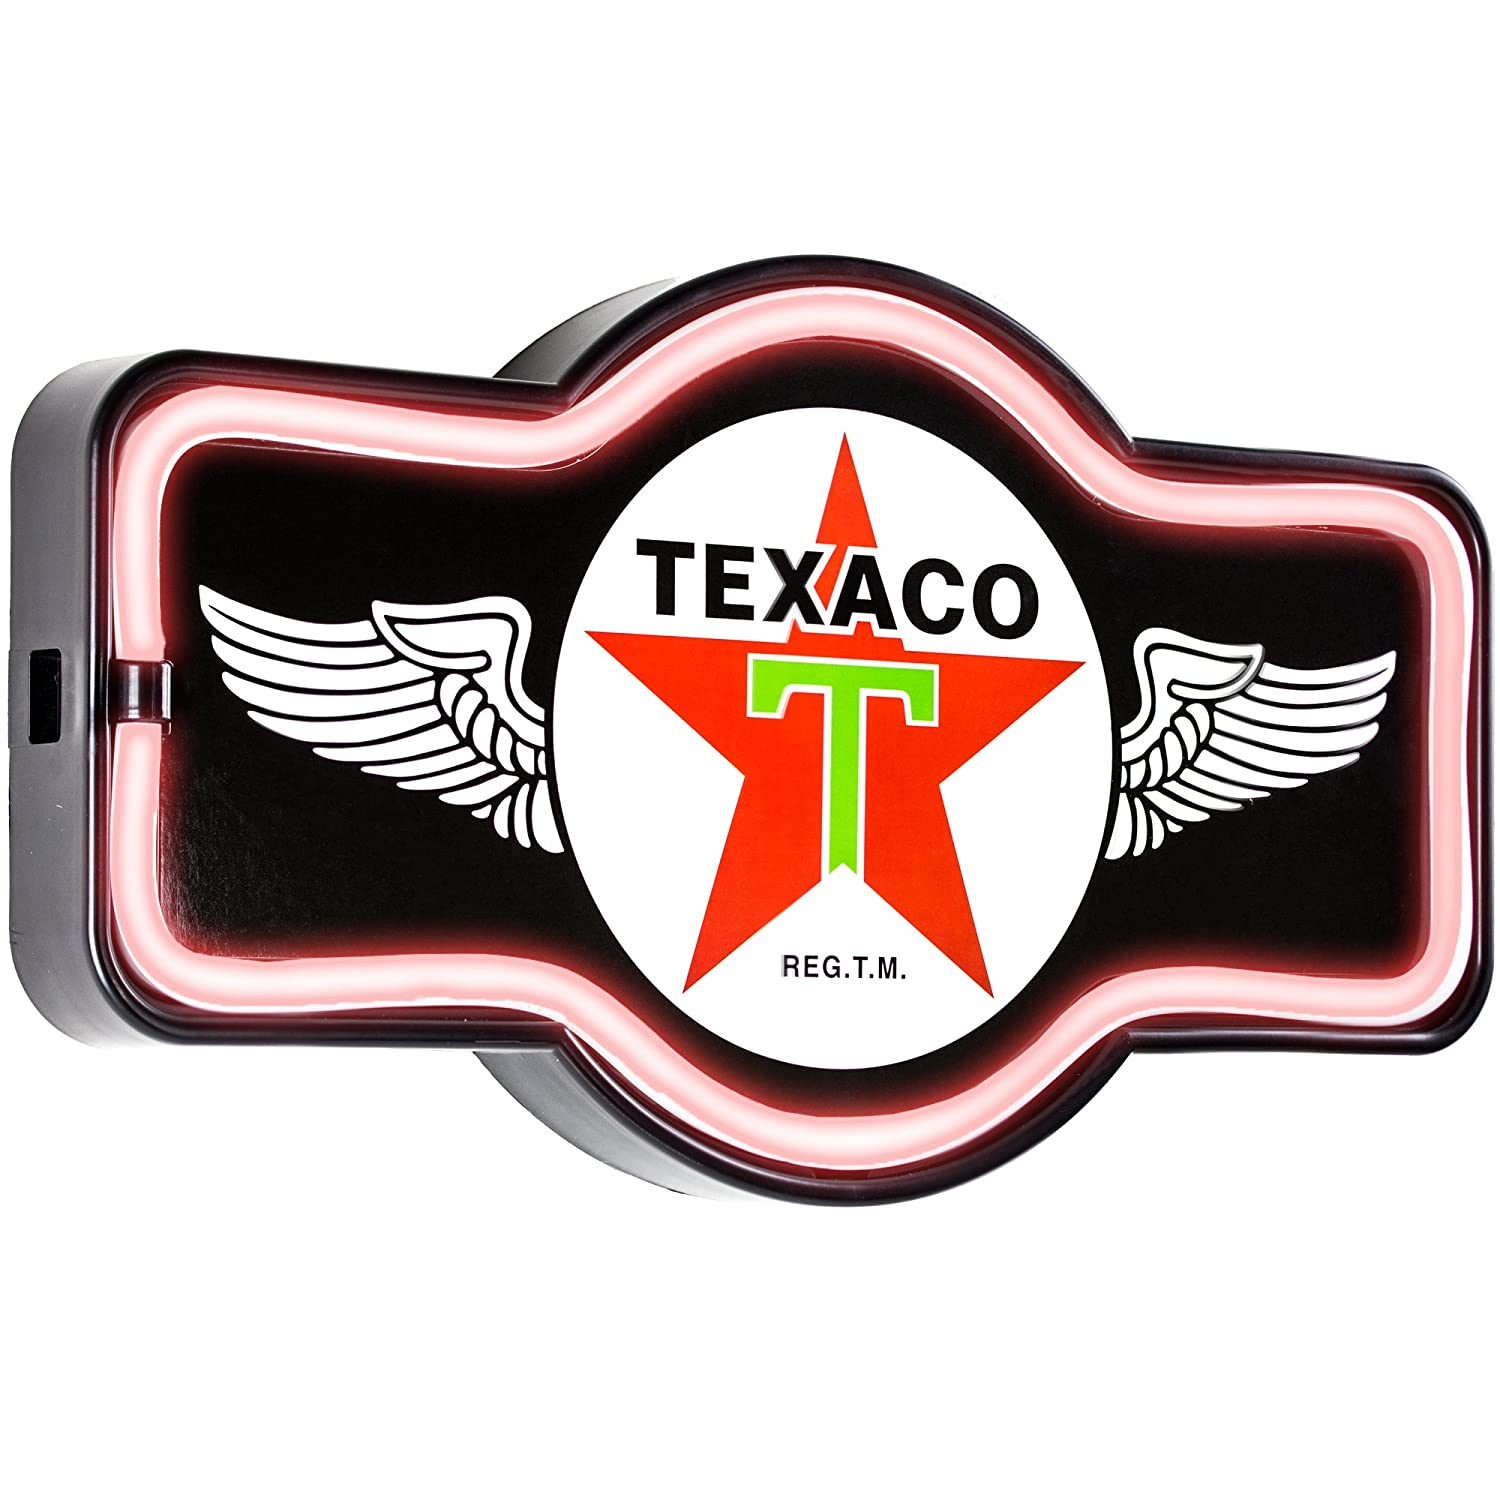 Reproduction Vintage Advertising Marquee Sign 17 x 10 x 3 Inches Sott Battery Powered LED Neon Style Light Texaco Oil Gas Station